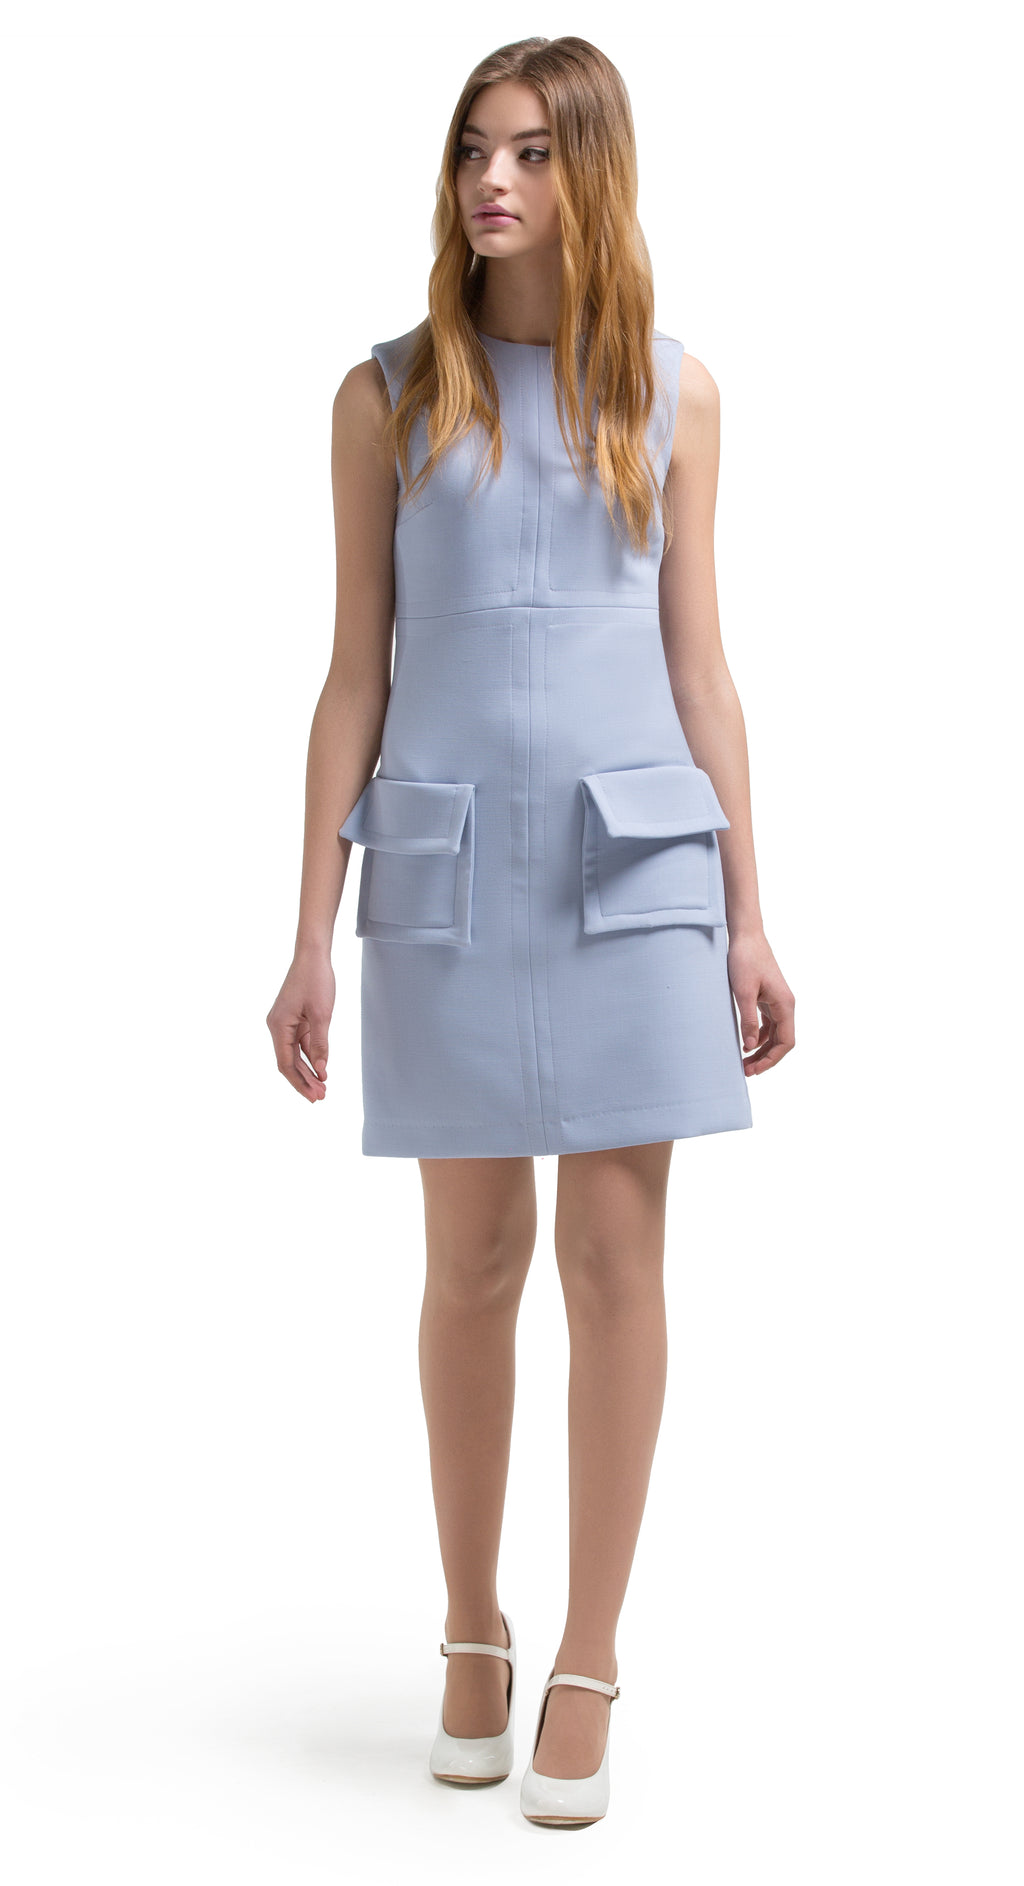 This straight cut, 1960s style, dusty blue, fitted dress features 2 large fold-over pockets and beautiful top stitching detail. It is a confident number, elegant in its simplicity and practical for daily wear and from office to social outing. A suggested wardrobe addition for the tail end of summer and into the Autumn. Available in either dusty blue or light yellow.